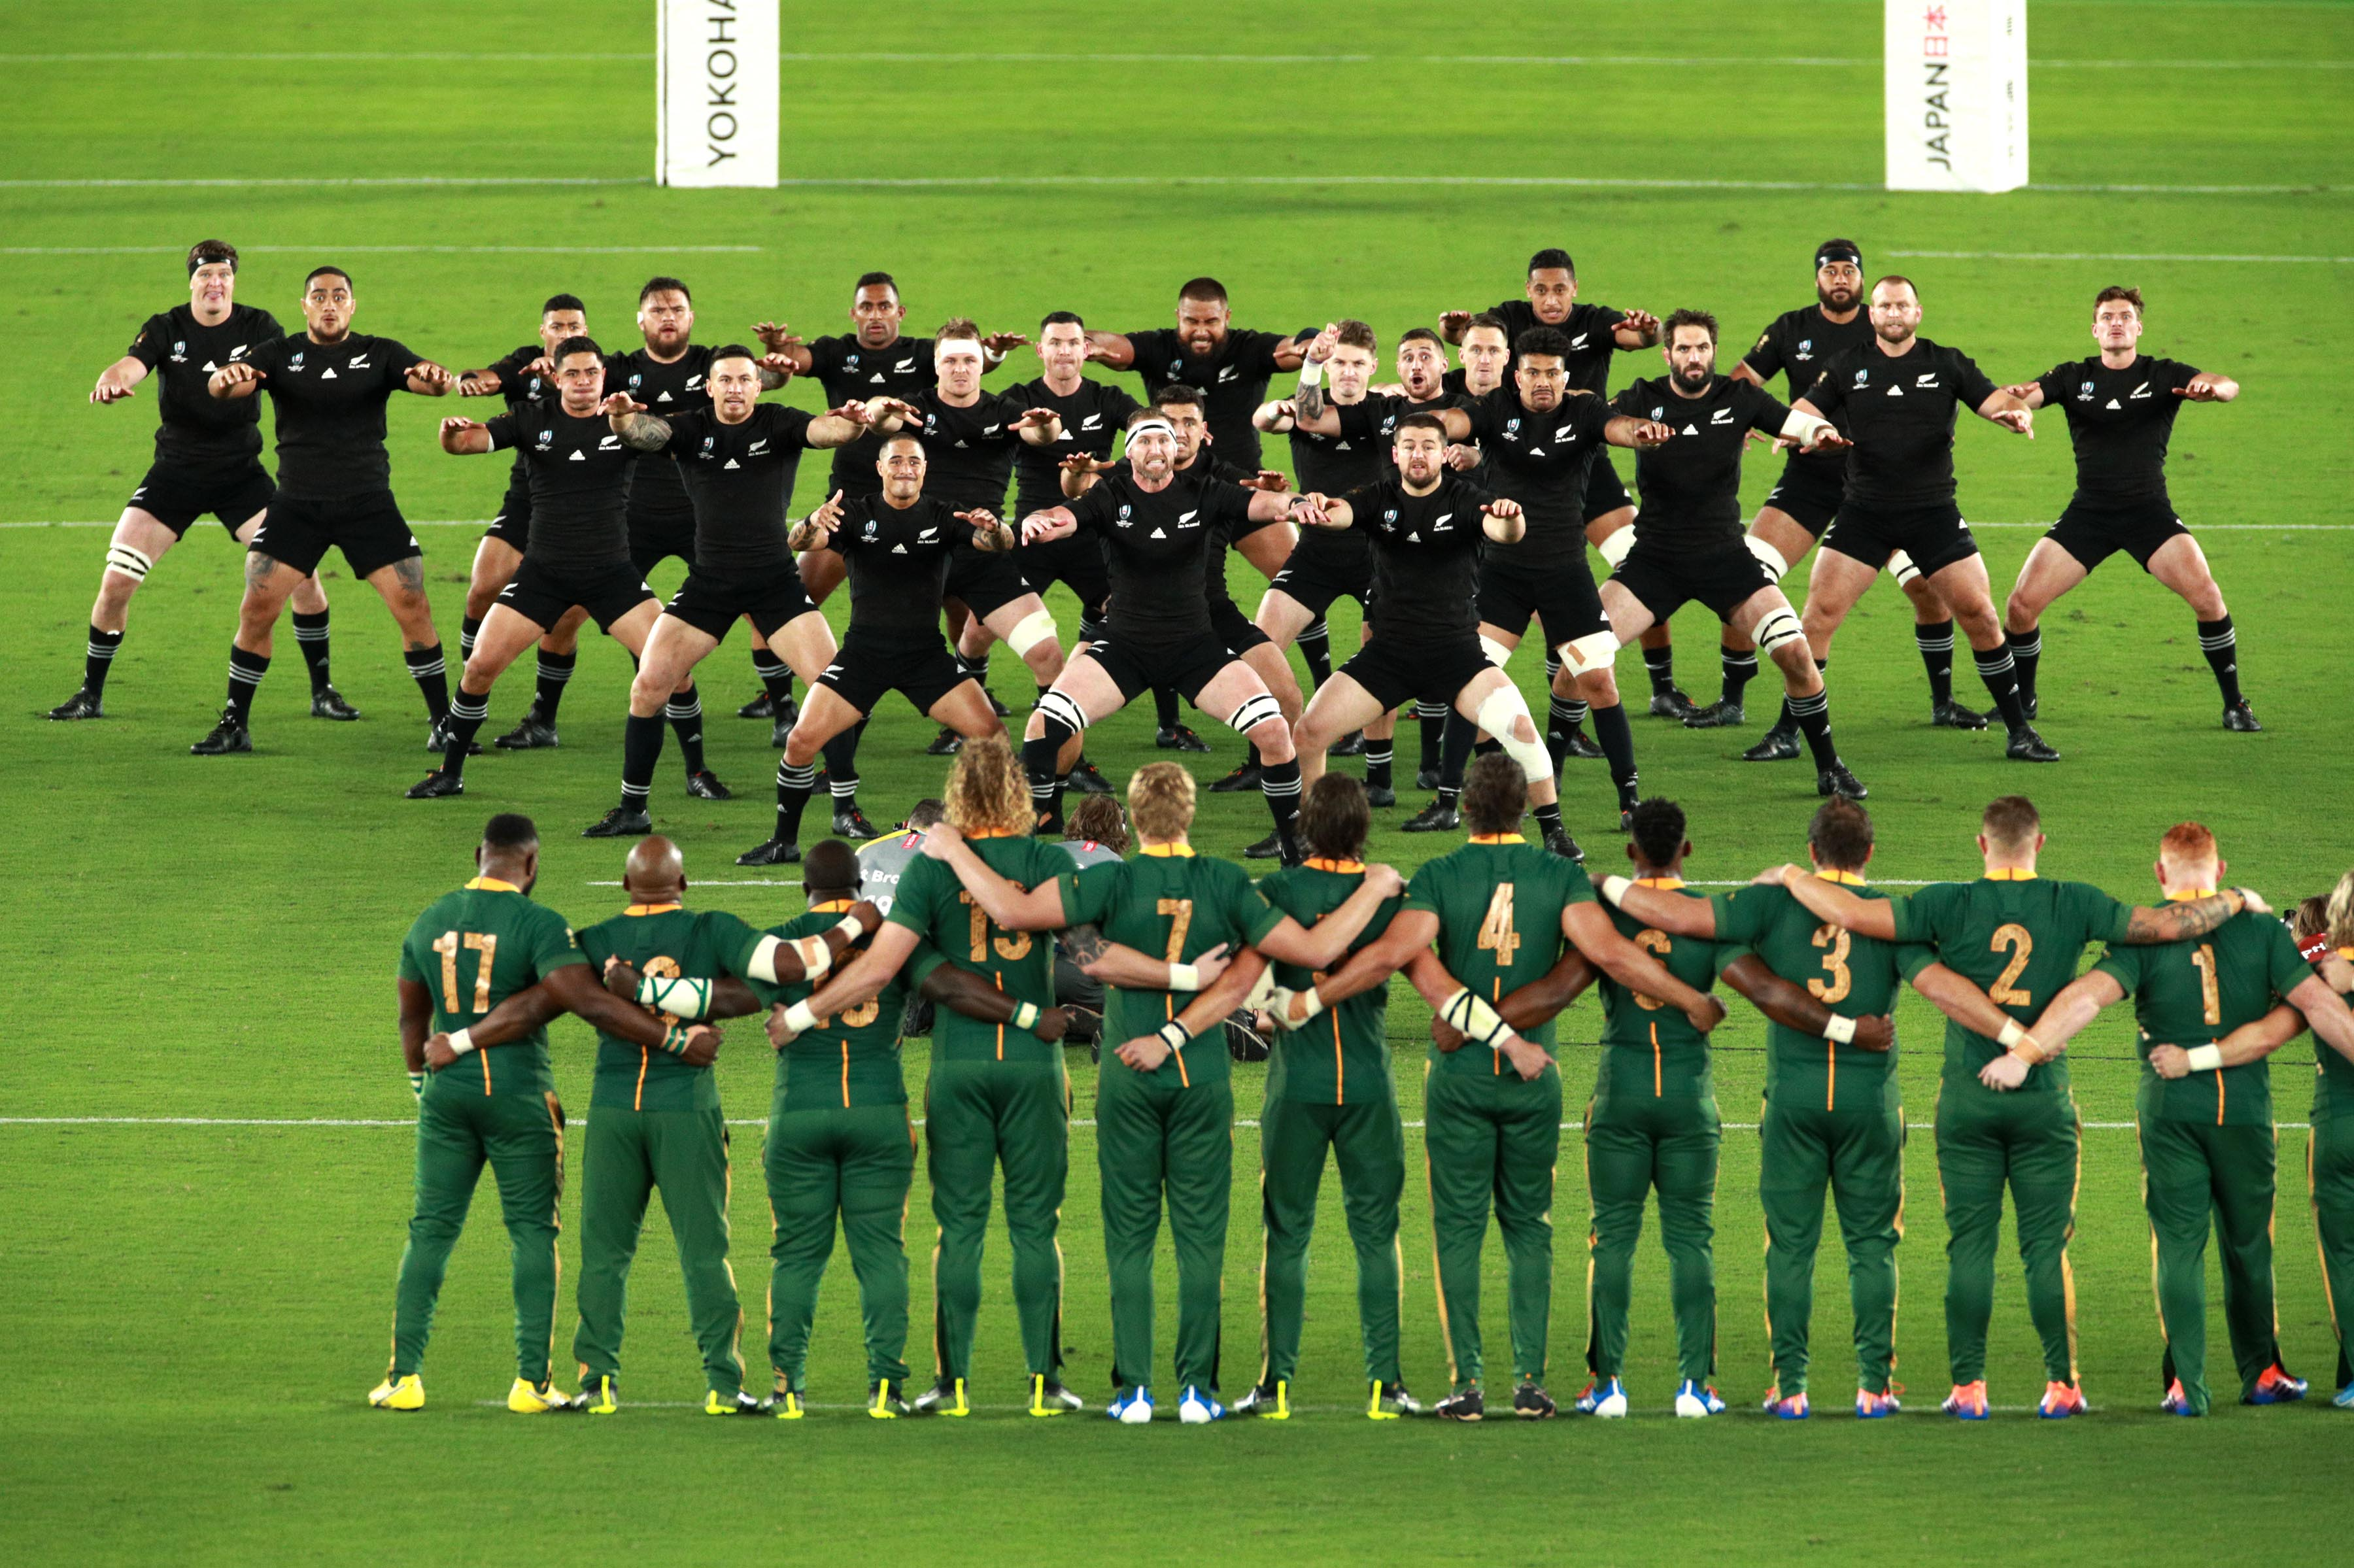 21 September 2019: The Springboks face New Zealand as they perform the Haka prior to their 2019 Rugby World Cup group stage game at the International Stadium Yokohama in Yokohama, Kanagawa, Japan. (Photograph by Adam Pretty/Getty Images)